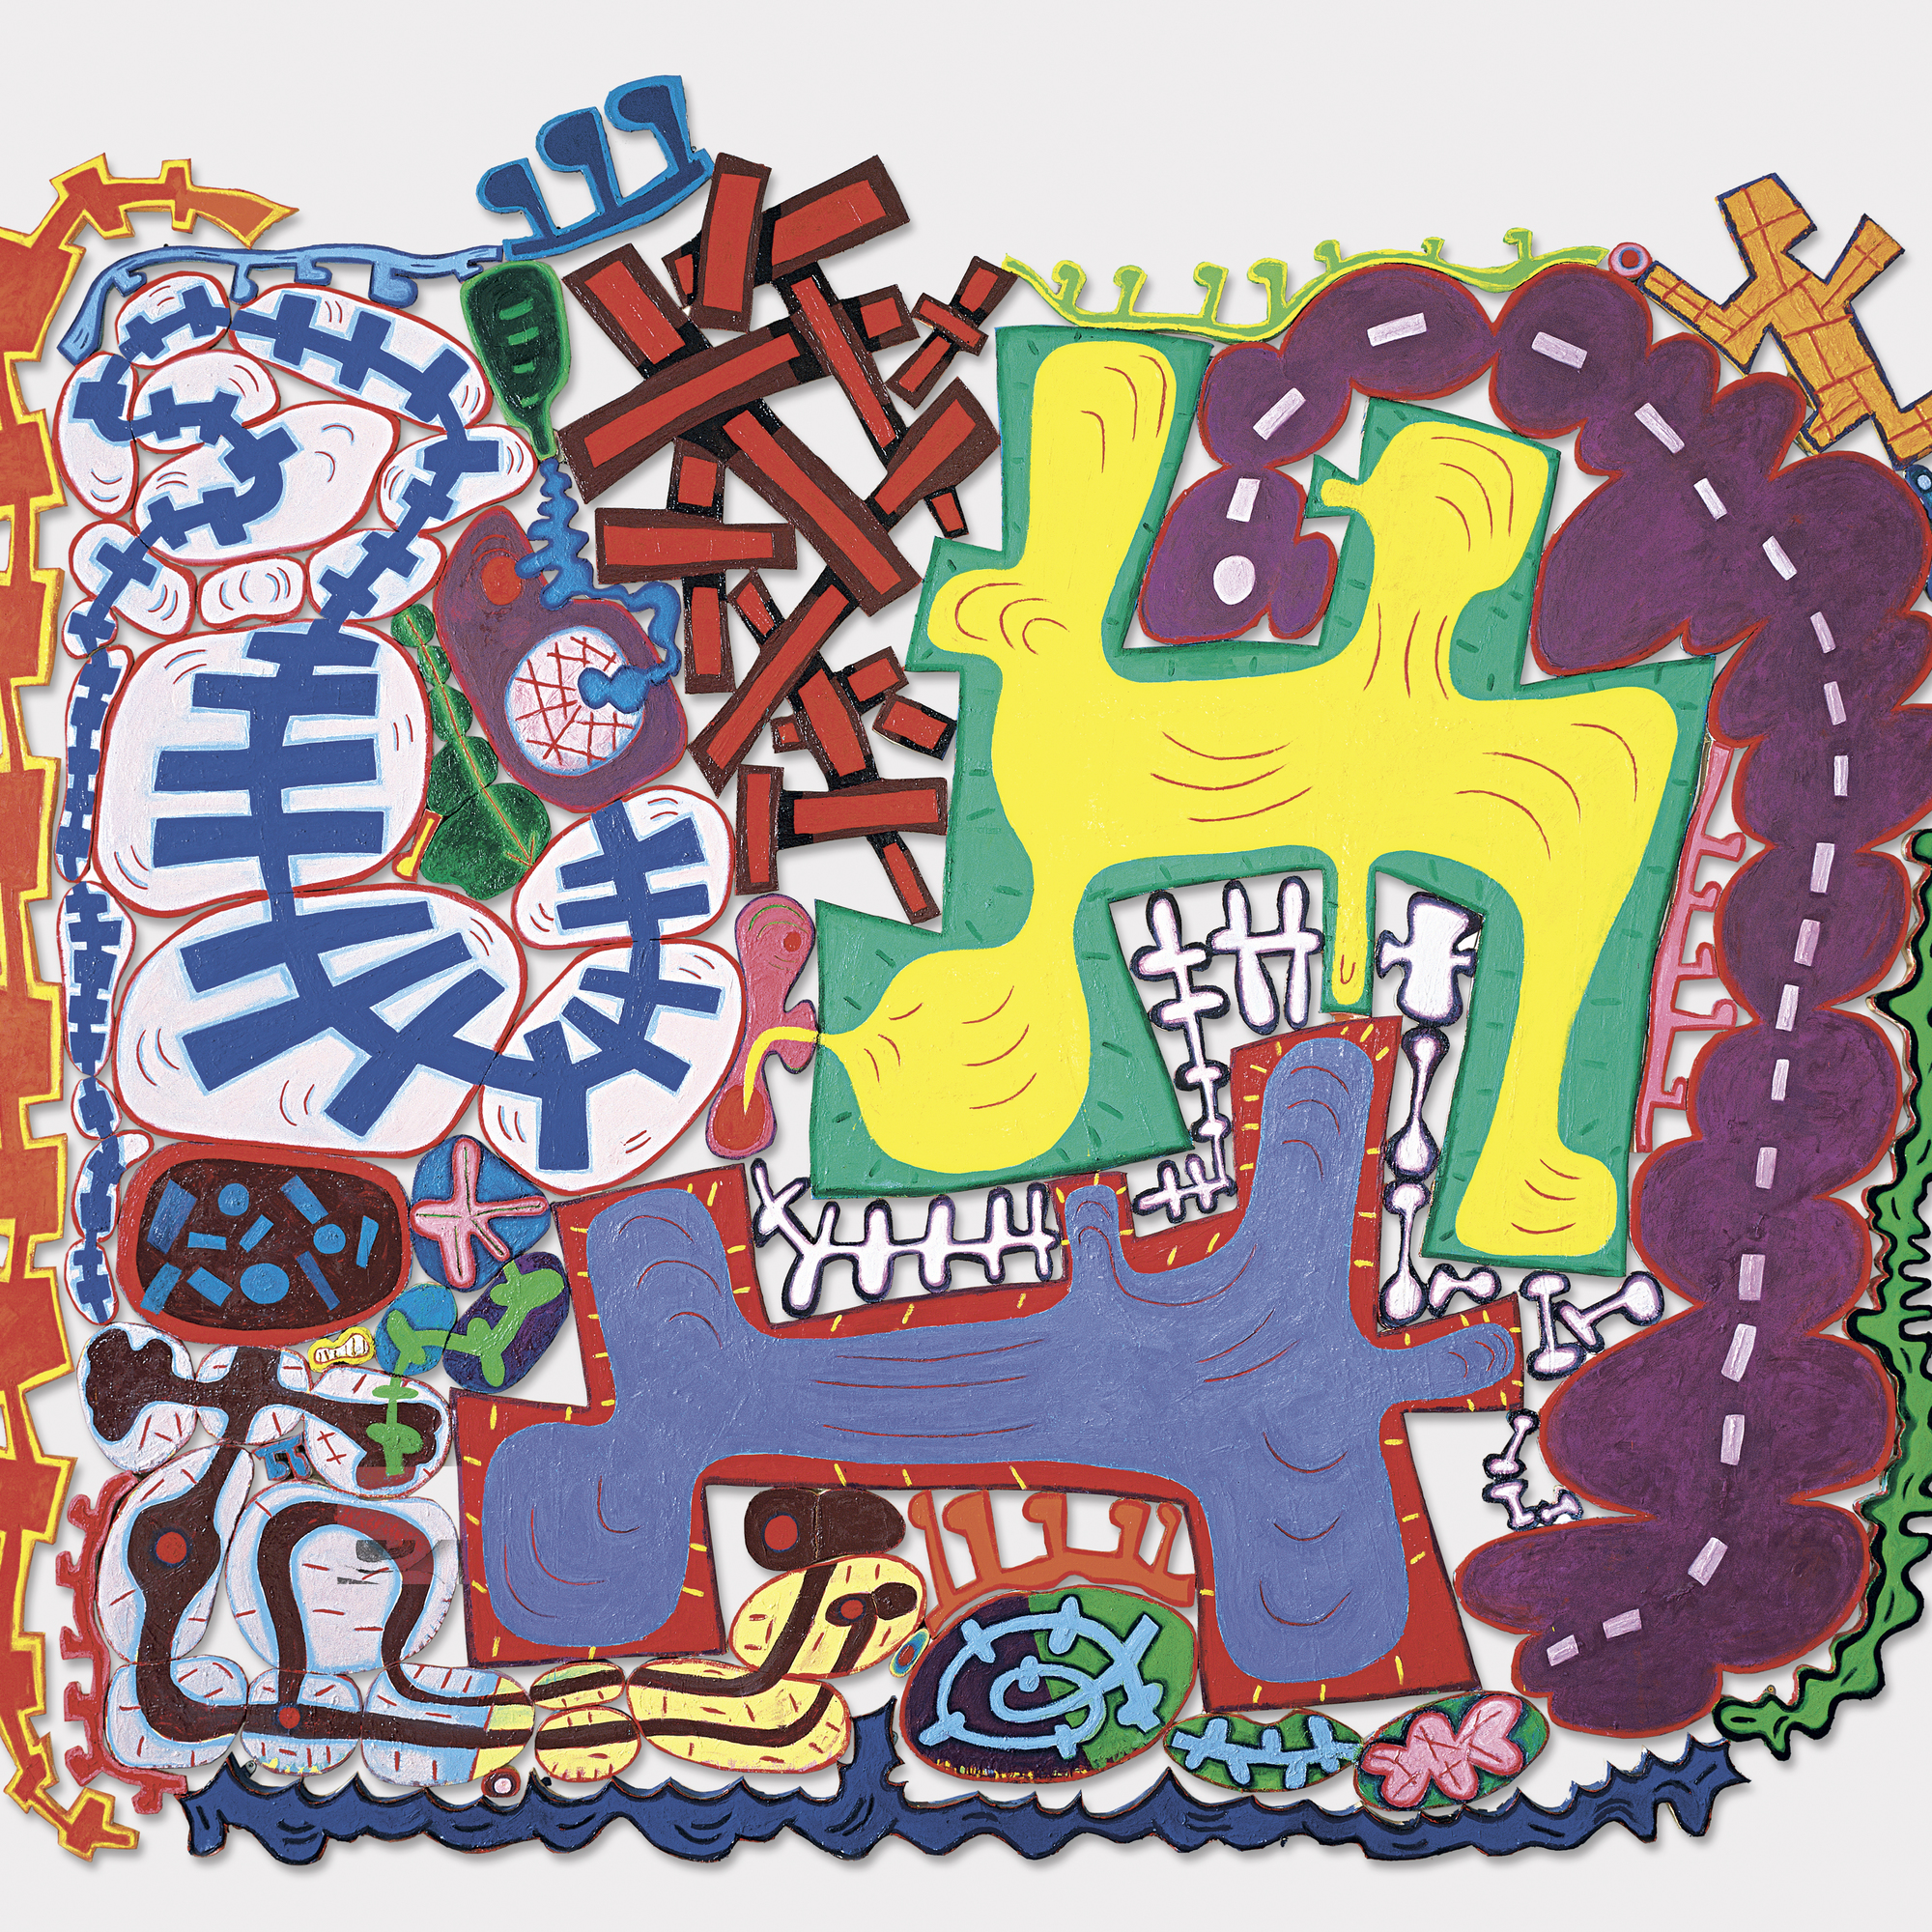 Elizabeth Murray. Do the Dance. 2005. Oil on canvas, 9′5″ × 11′3″ × 1 1/2″ (287 × 342.9 × 3.8 cm). Courtesy PaceWildenstein. Photo: David Allison. © 2005 Elizabeth Murray